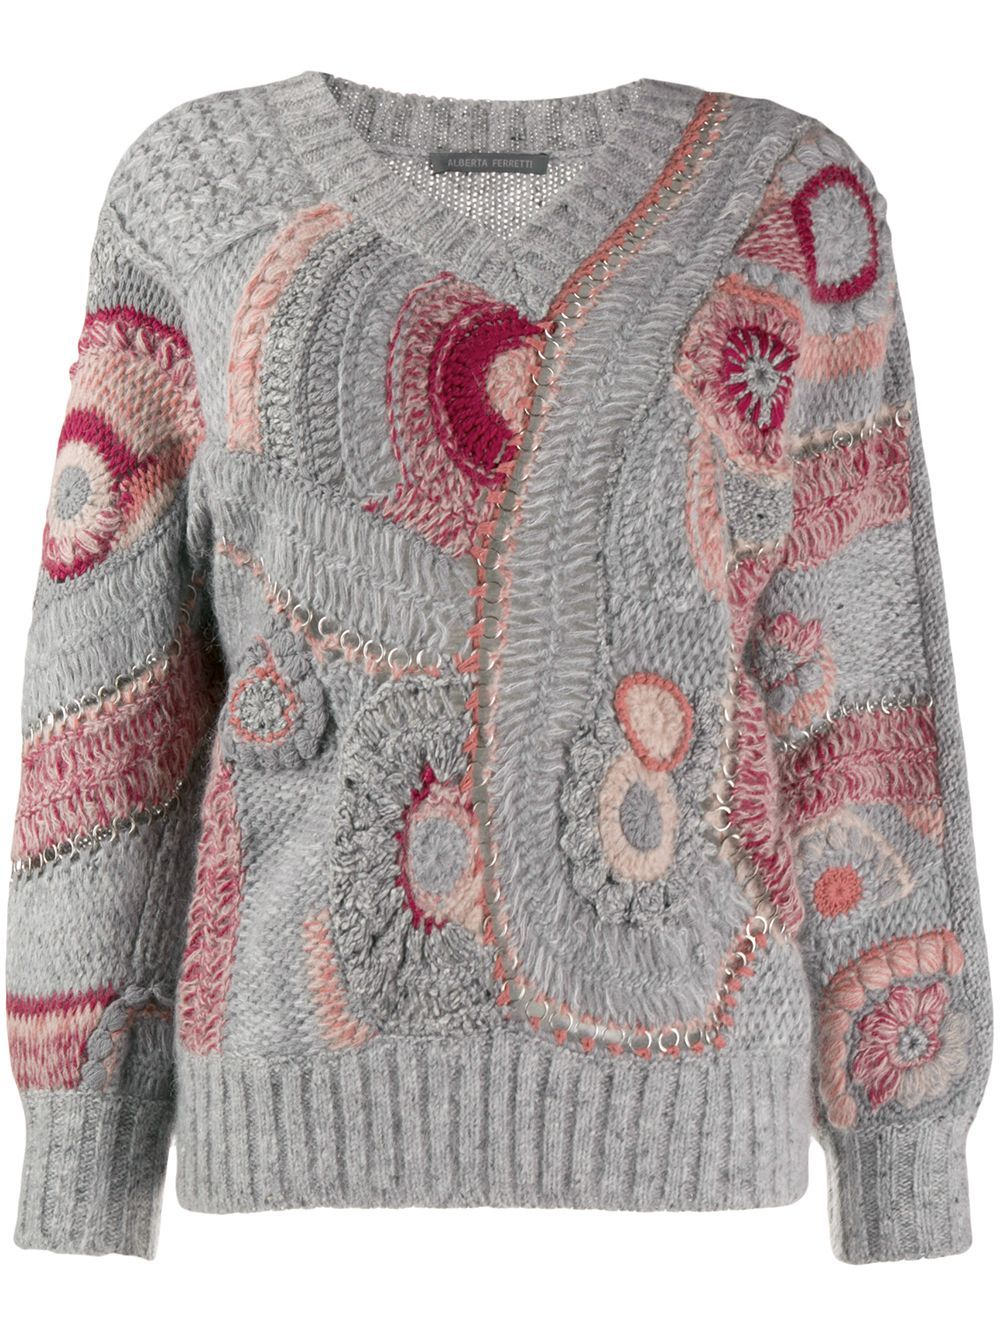 Alberta Ferretti Eyelet patterned knit jumper - Grey